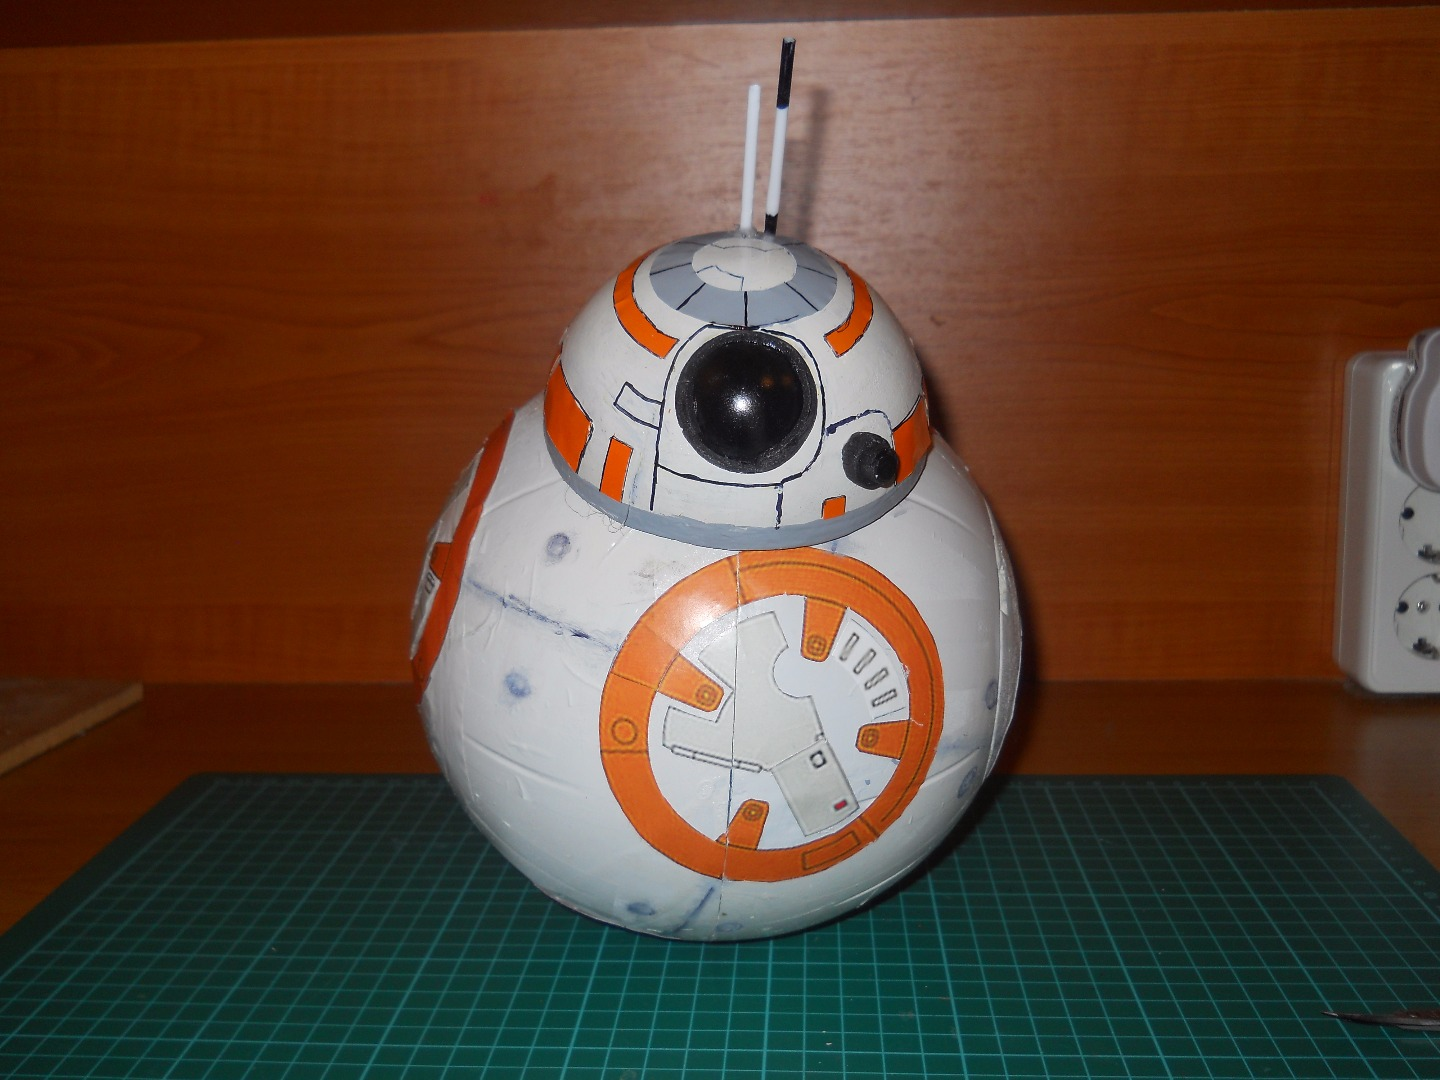 Picture of DIY Bluetooth Phone Controlled BB-8 Droid With Arduino UNO